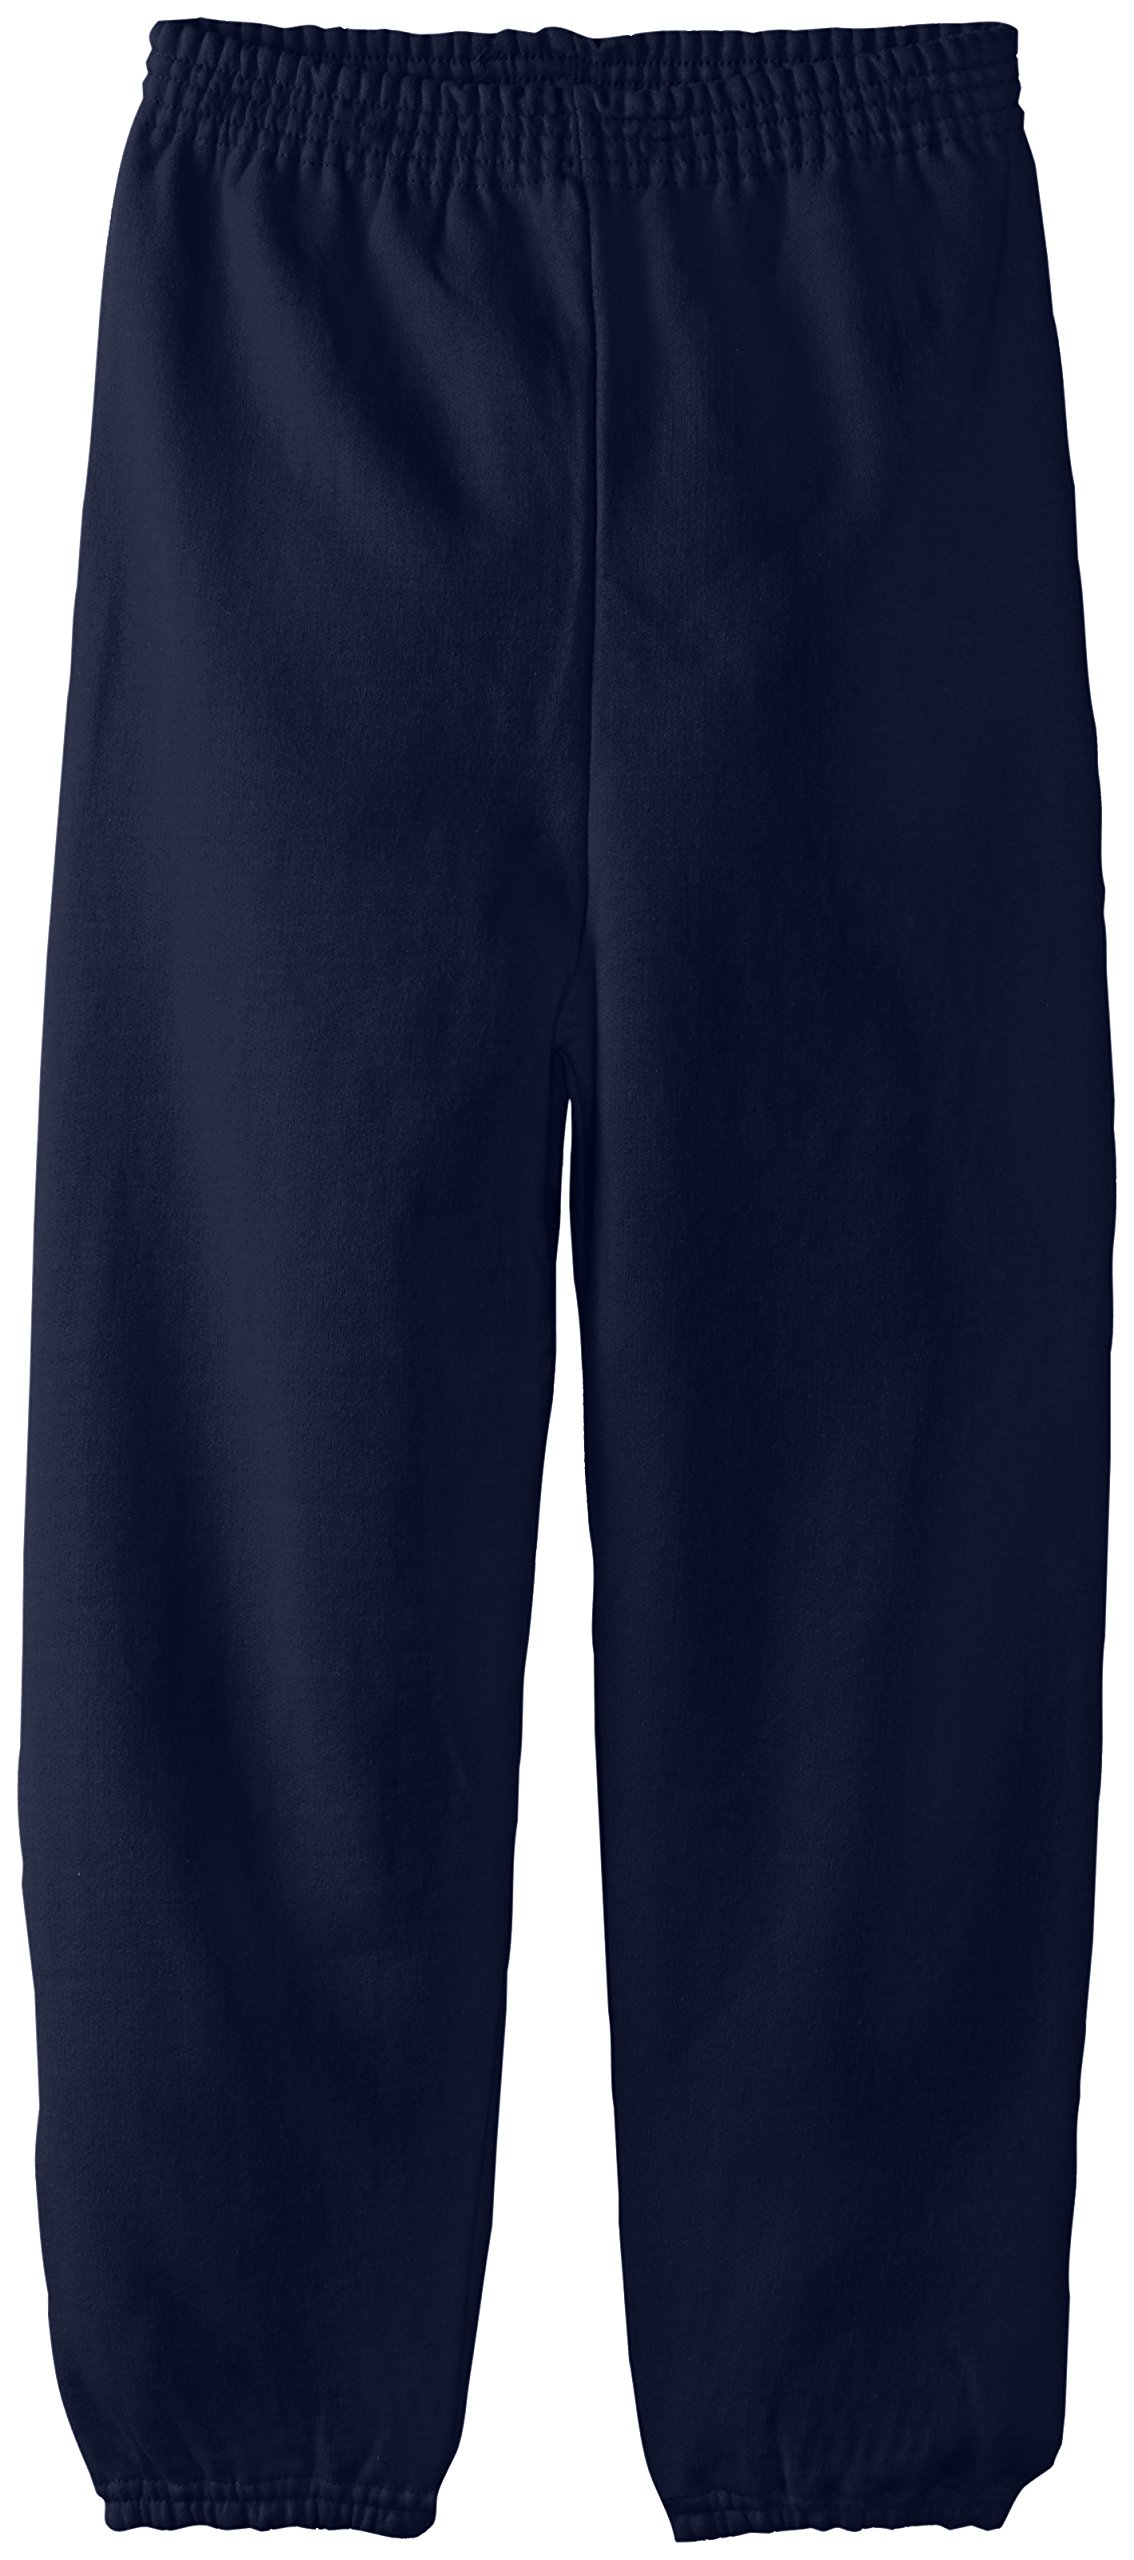 Hanes Big Boys' Eco Smart Fleece Pant, Navy, Medium